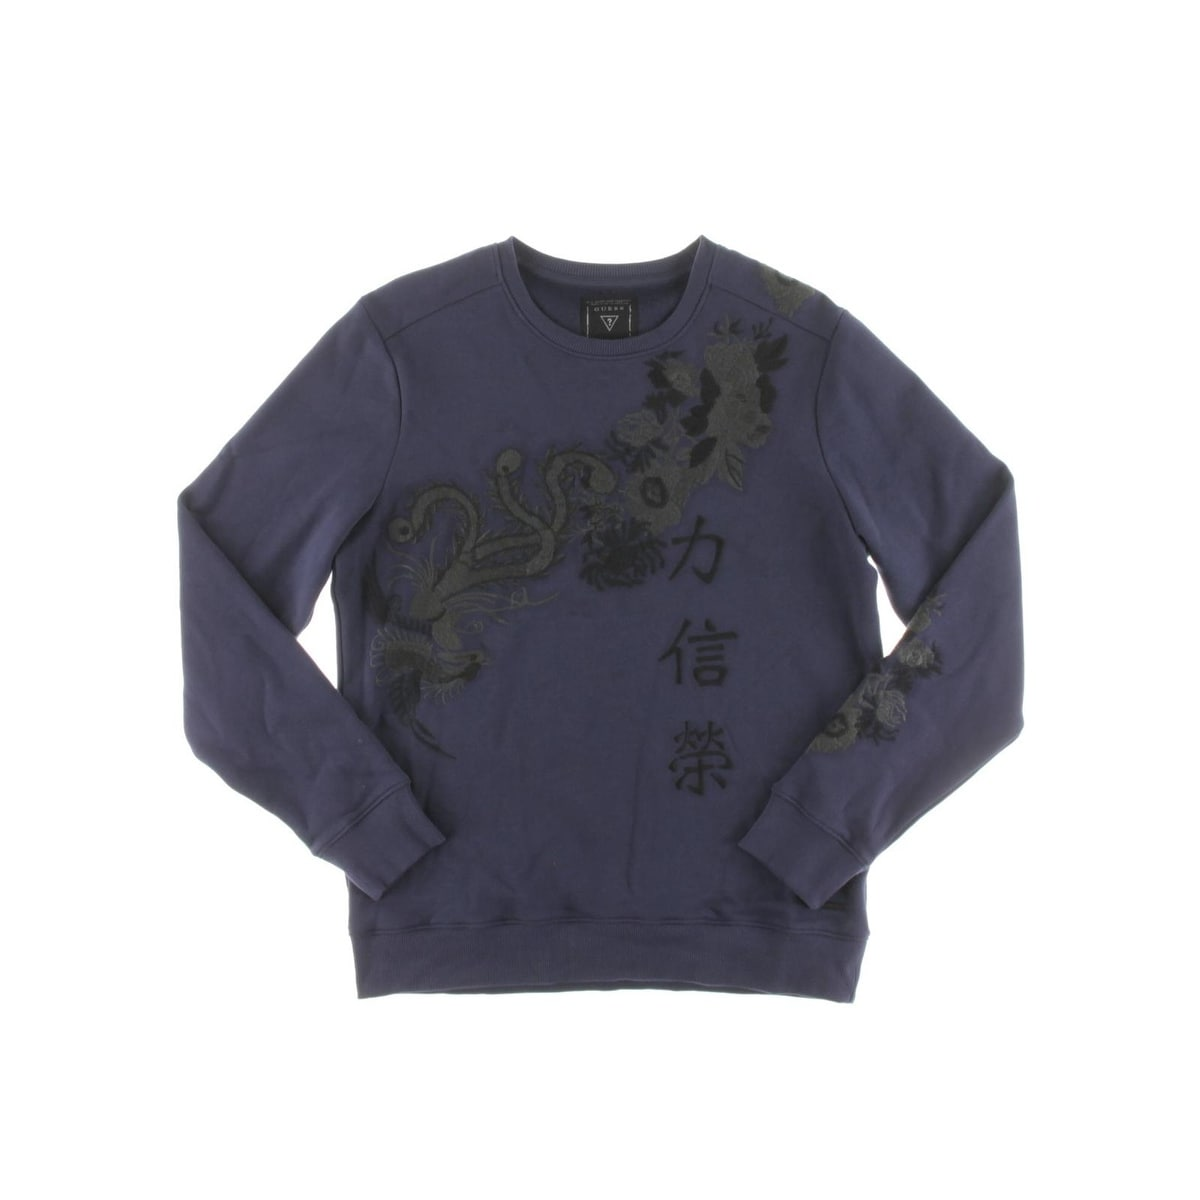 Shop Guess Mens Sweater Embroidered Long Sleeves - Free Shipping On Orders  Over  45 - Overstock - 20246062 5b614176ce899